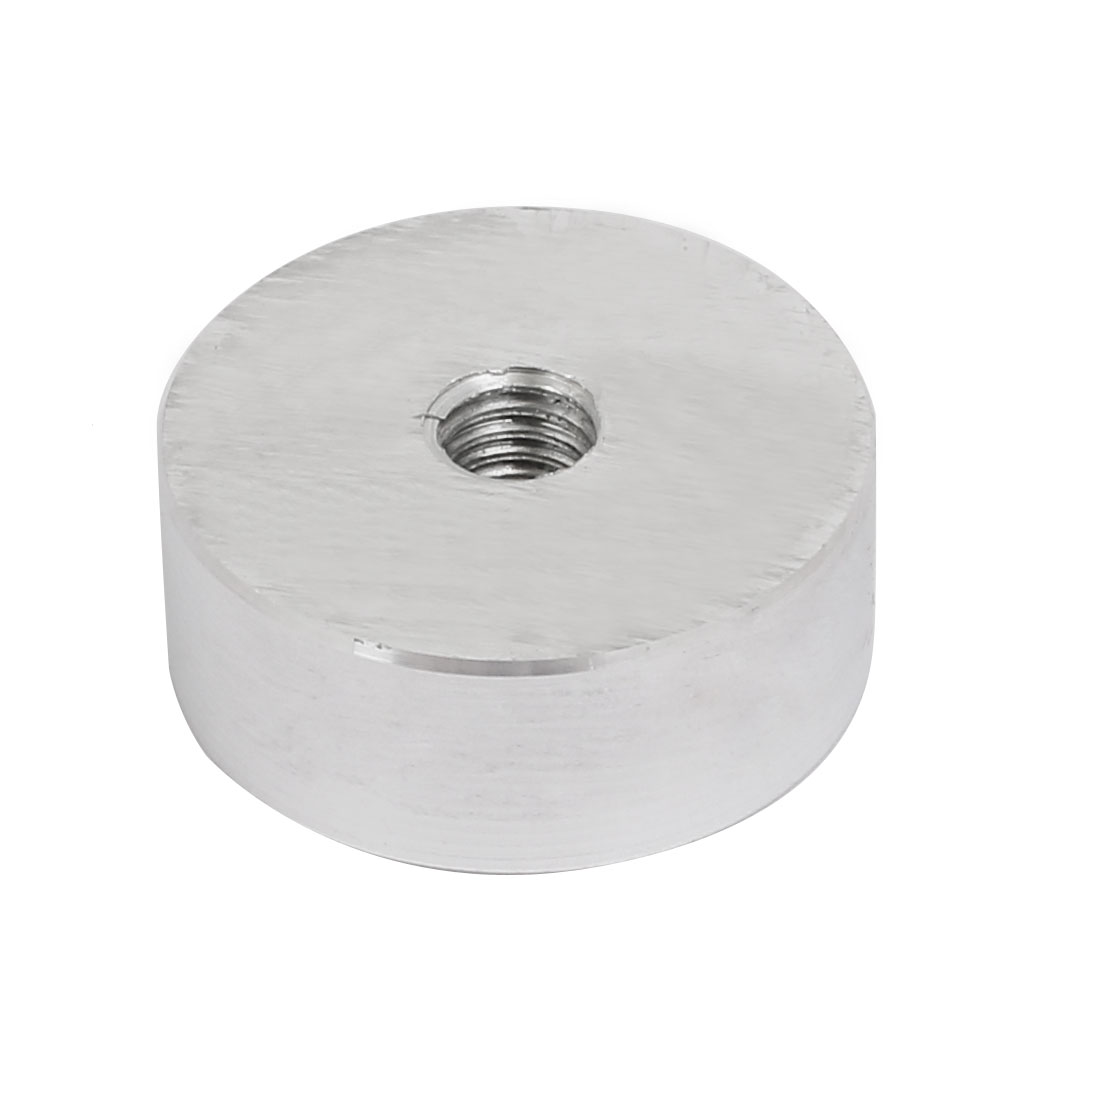 Unique Bargains 4pcs 25mm Dia 10mm Thickness M6 Thread Aluminum Disc Hardware for Glass Table - image 2 of 3